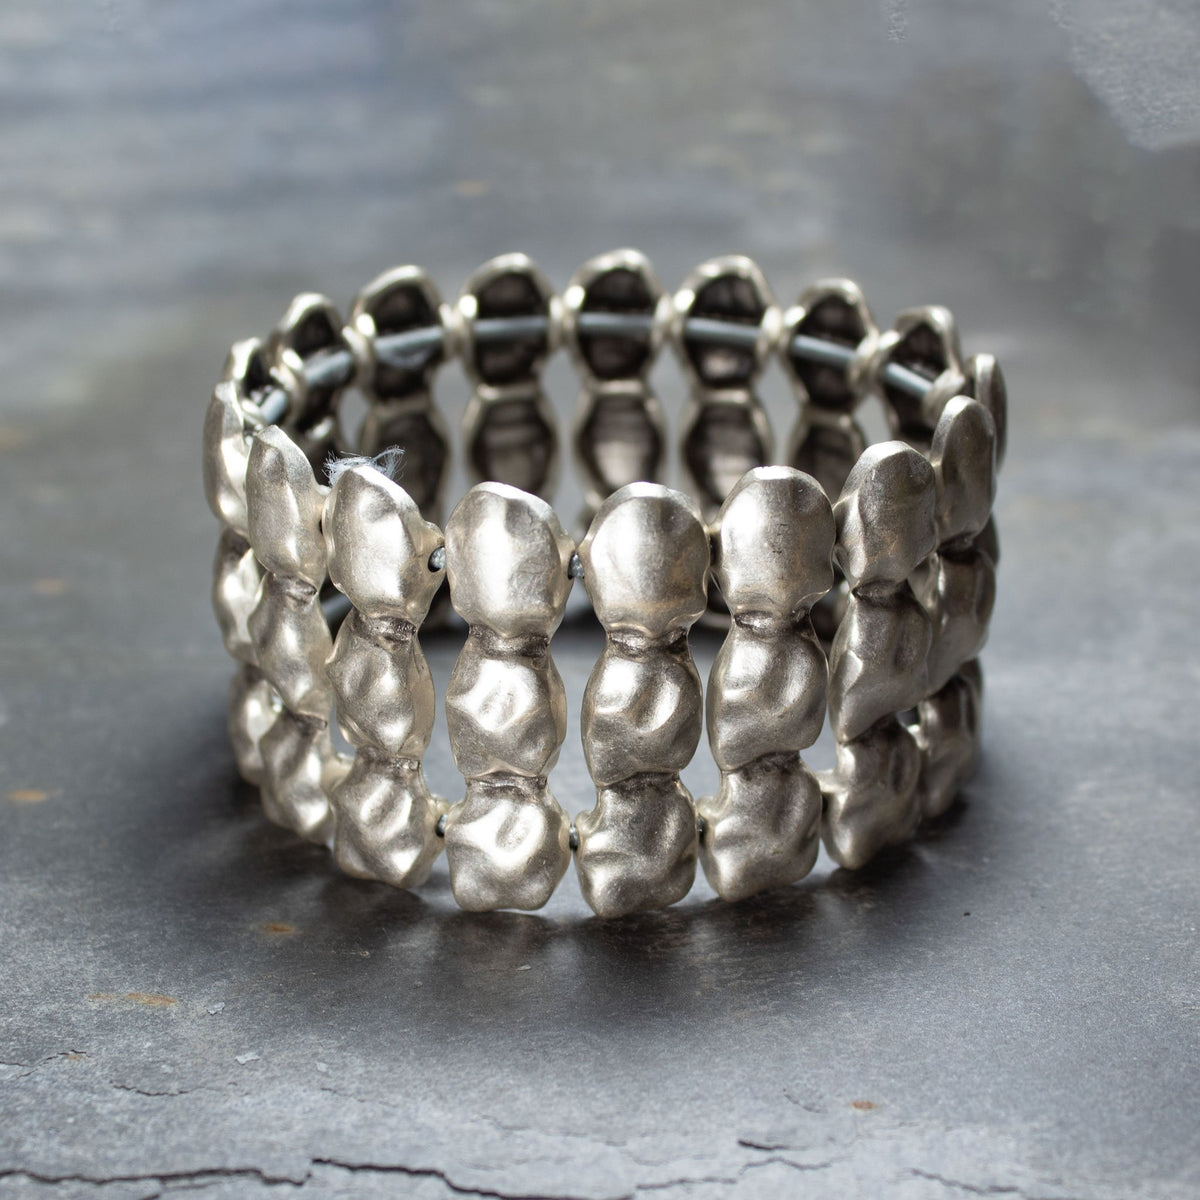 Stretchy Statement Cuff Bracelet | Bracelet - The Naughty Shrew